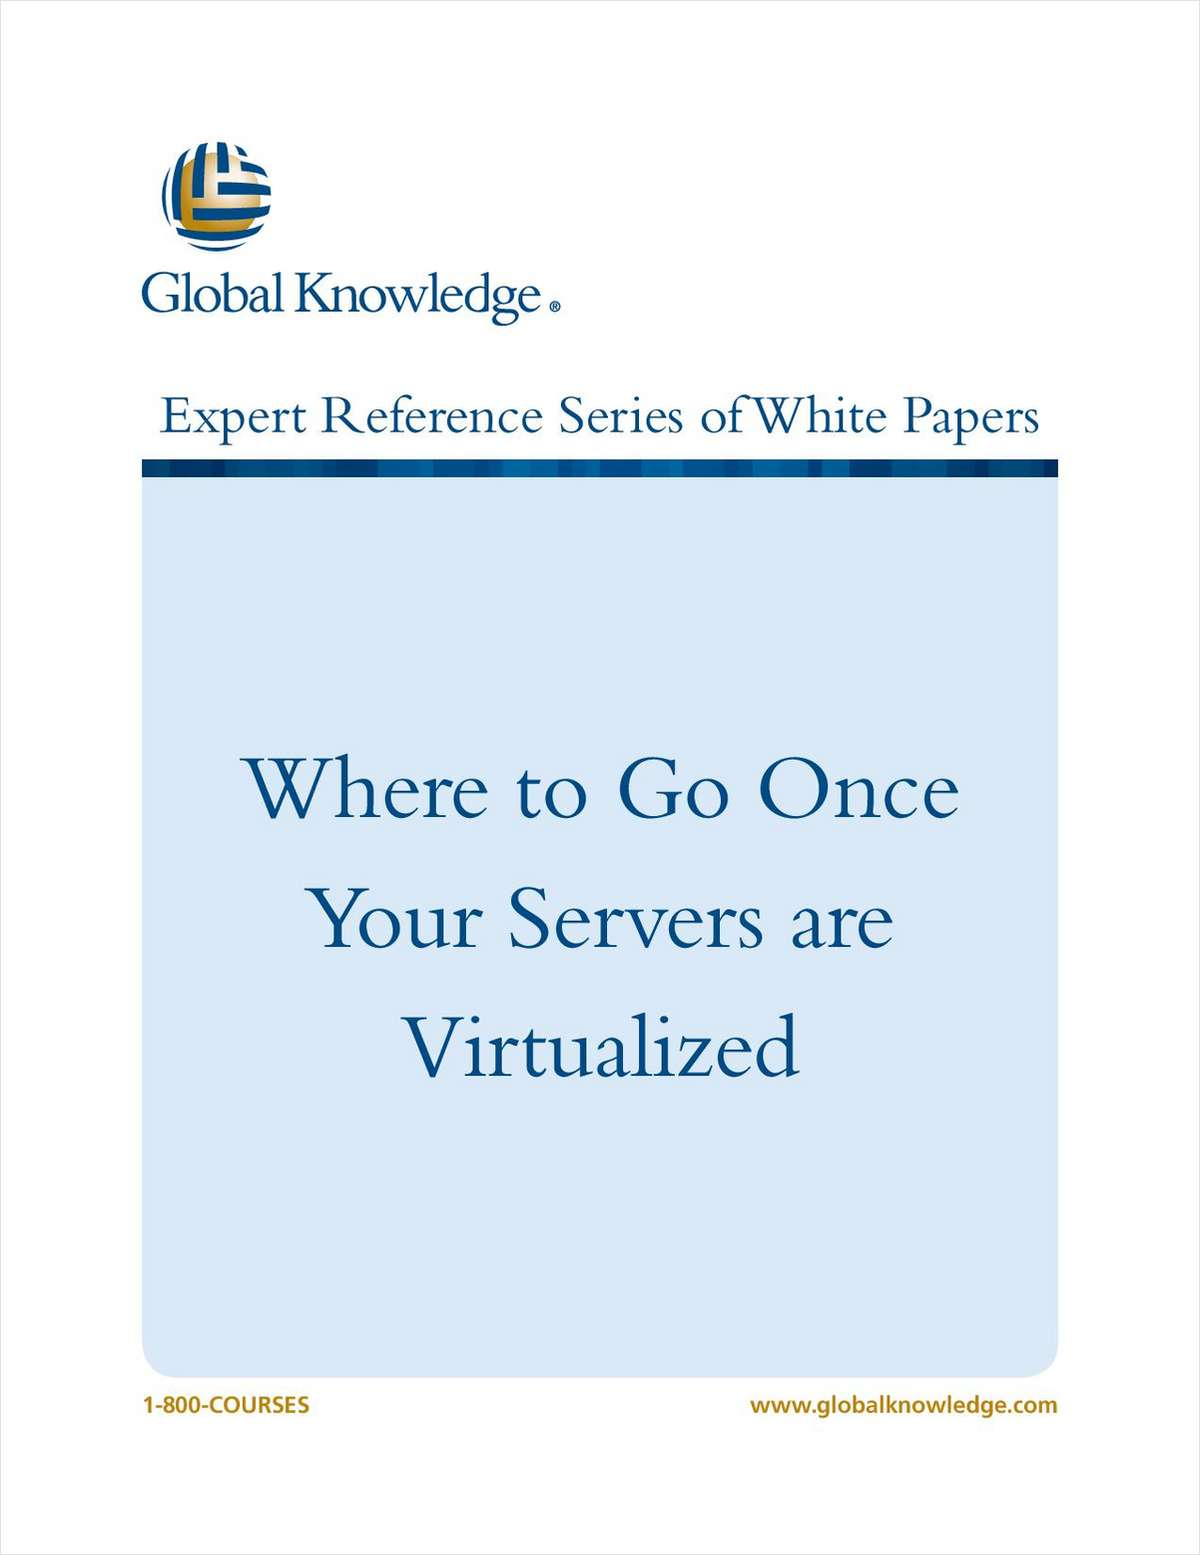 Where to Go Once Your Servers Are Virtualized